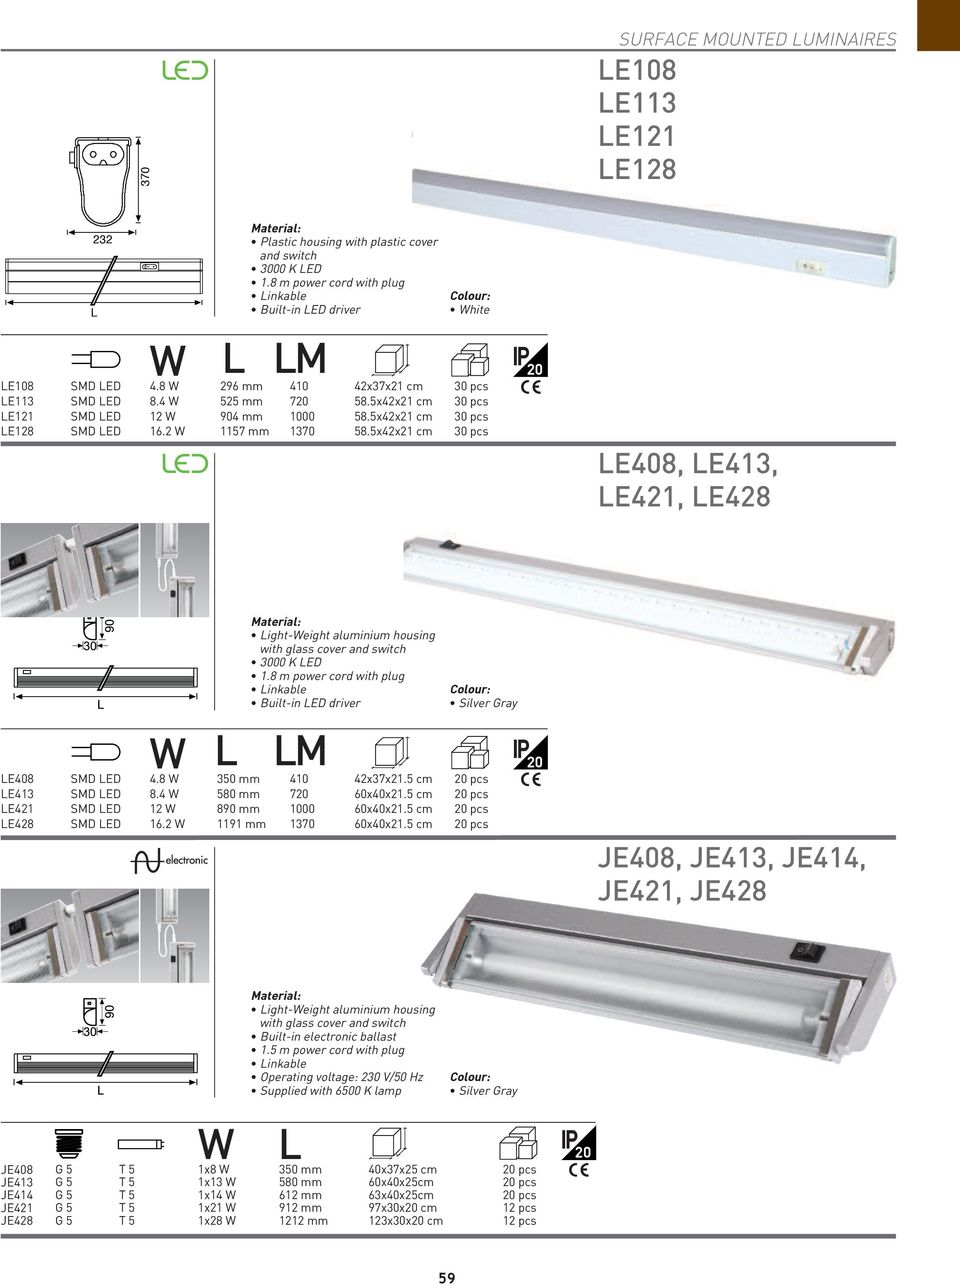 housing with plastic cover and switch 3000 K LED 1.8 m power cord with plug Linkable Built-in LED driver L LM hite SMD LED 4.8 296 mm 410 42x37x21 cm 30 pcs SMD LED 8.4 525 mm 720 58.